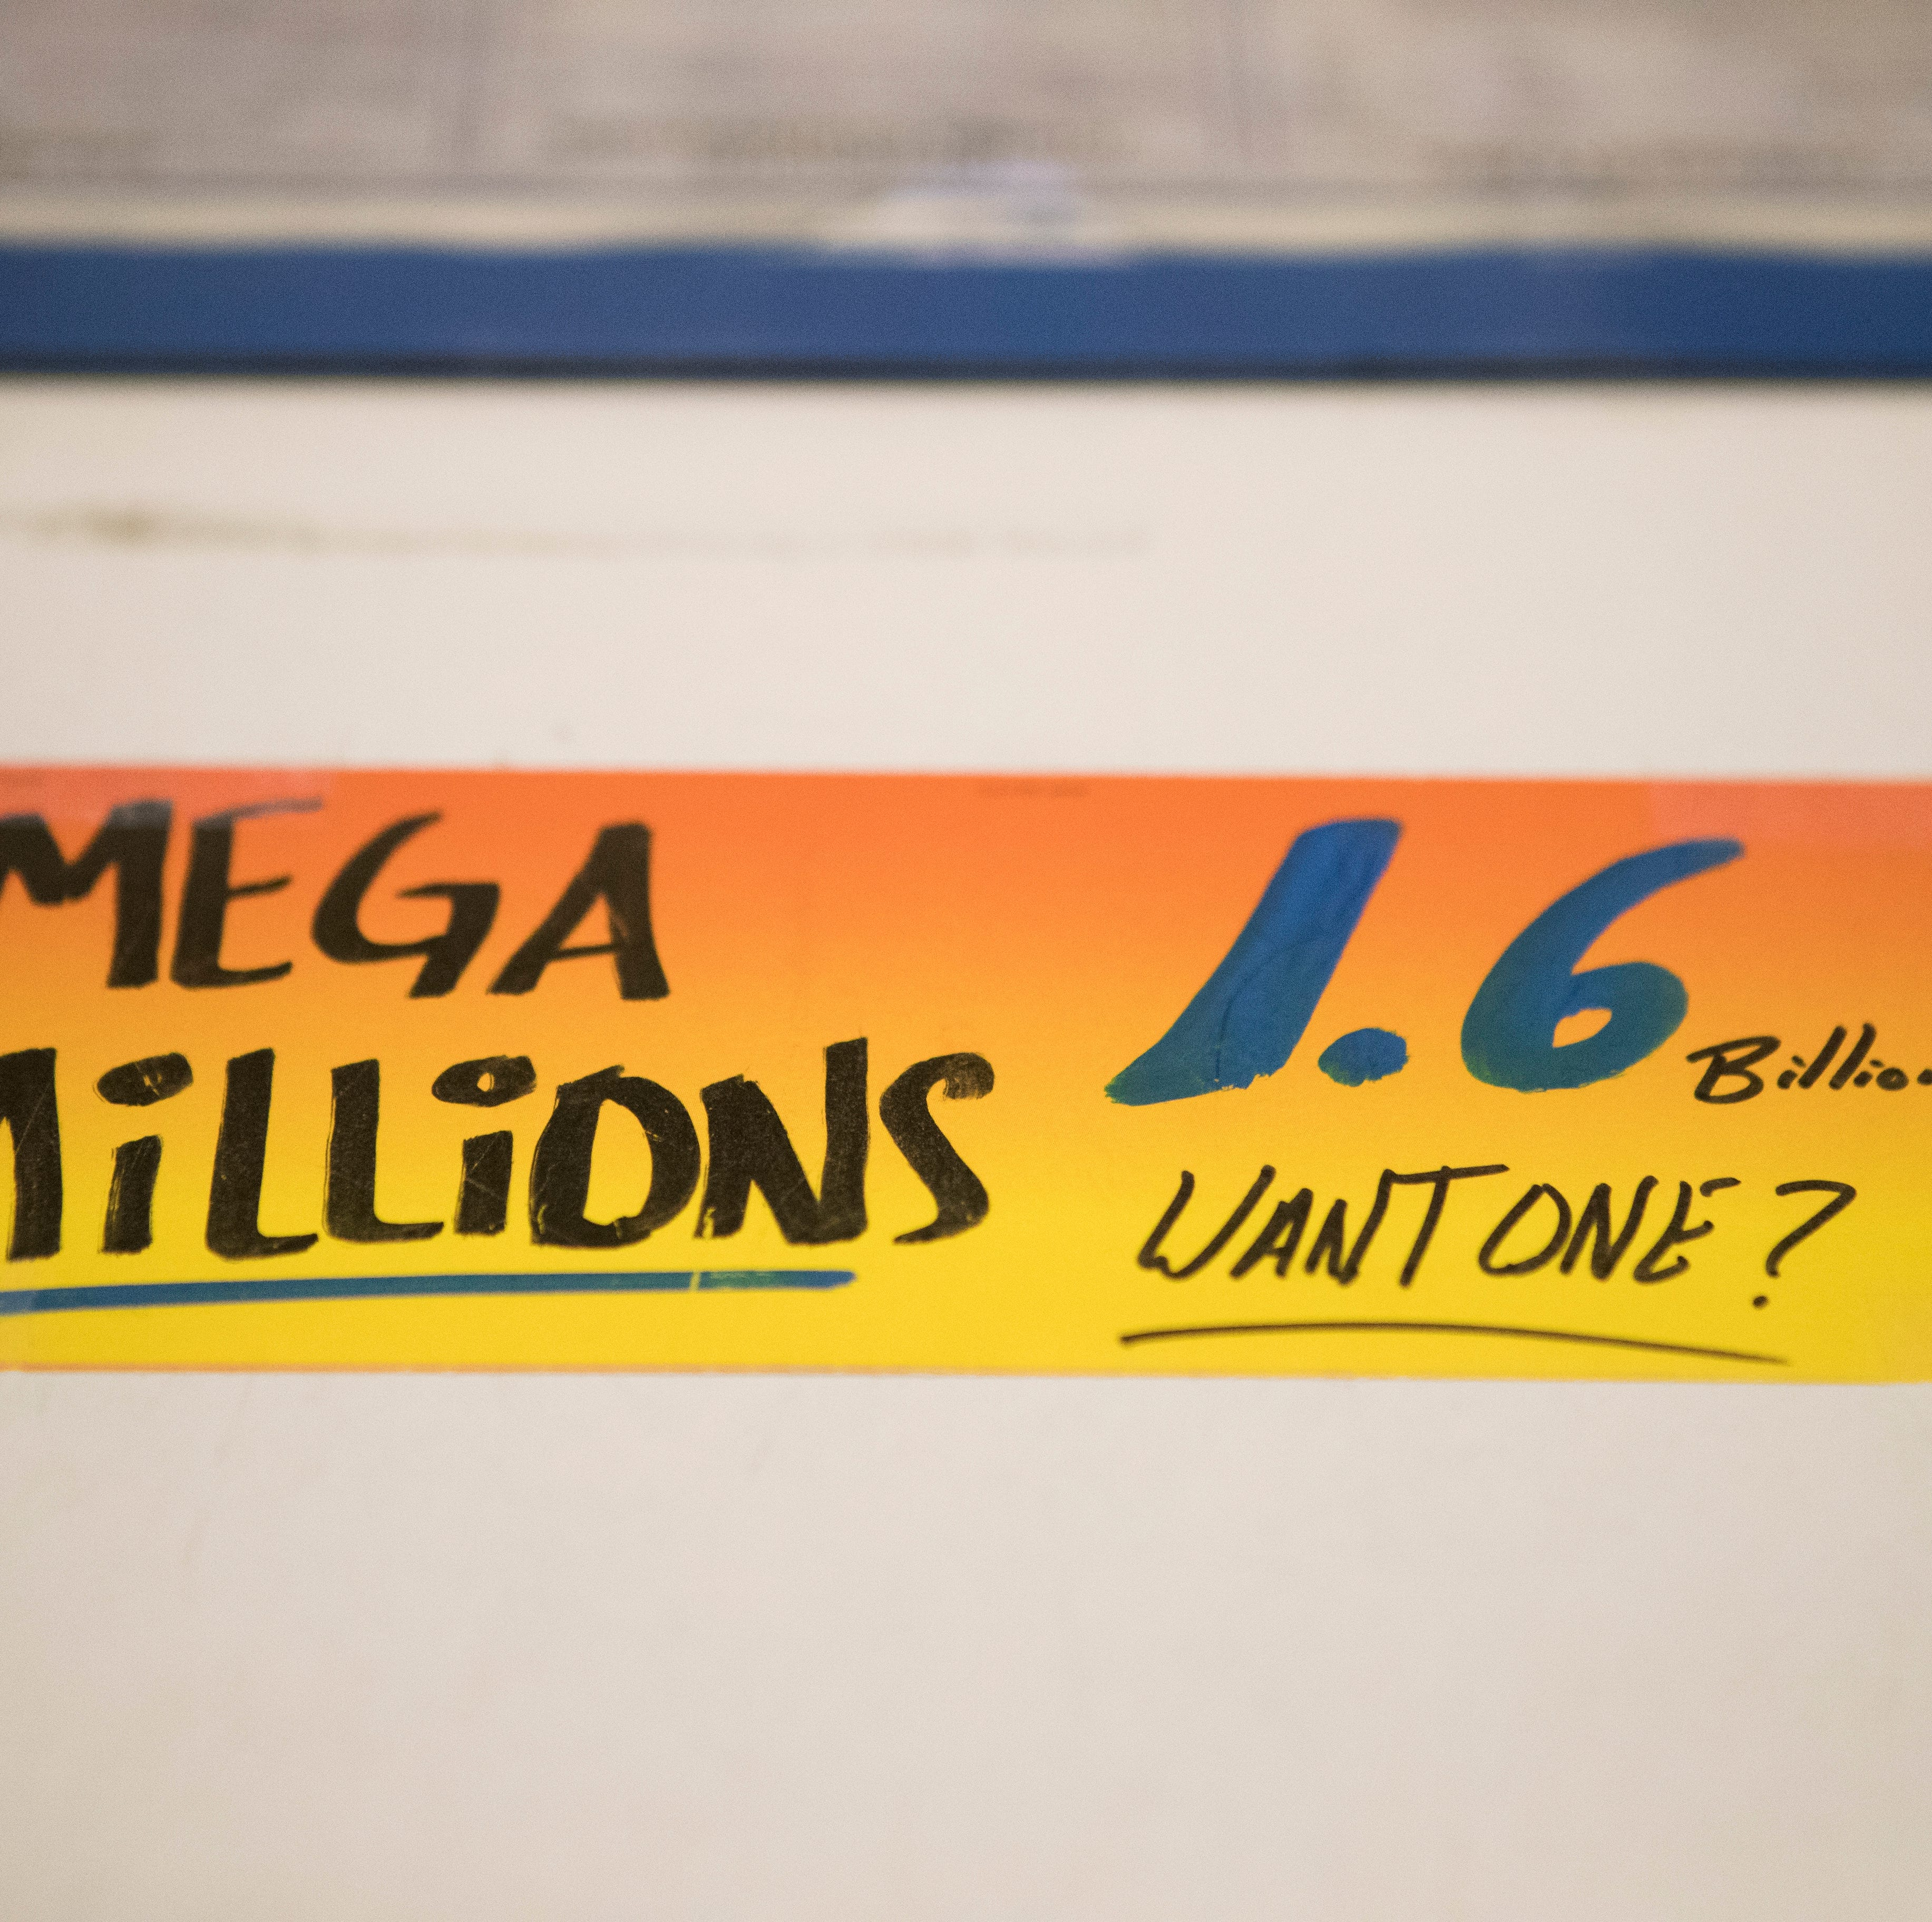 Didn't win? Here's where your Delaware Lottery money went instead